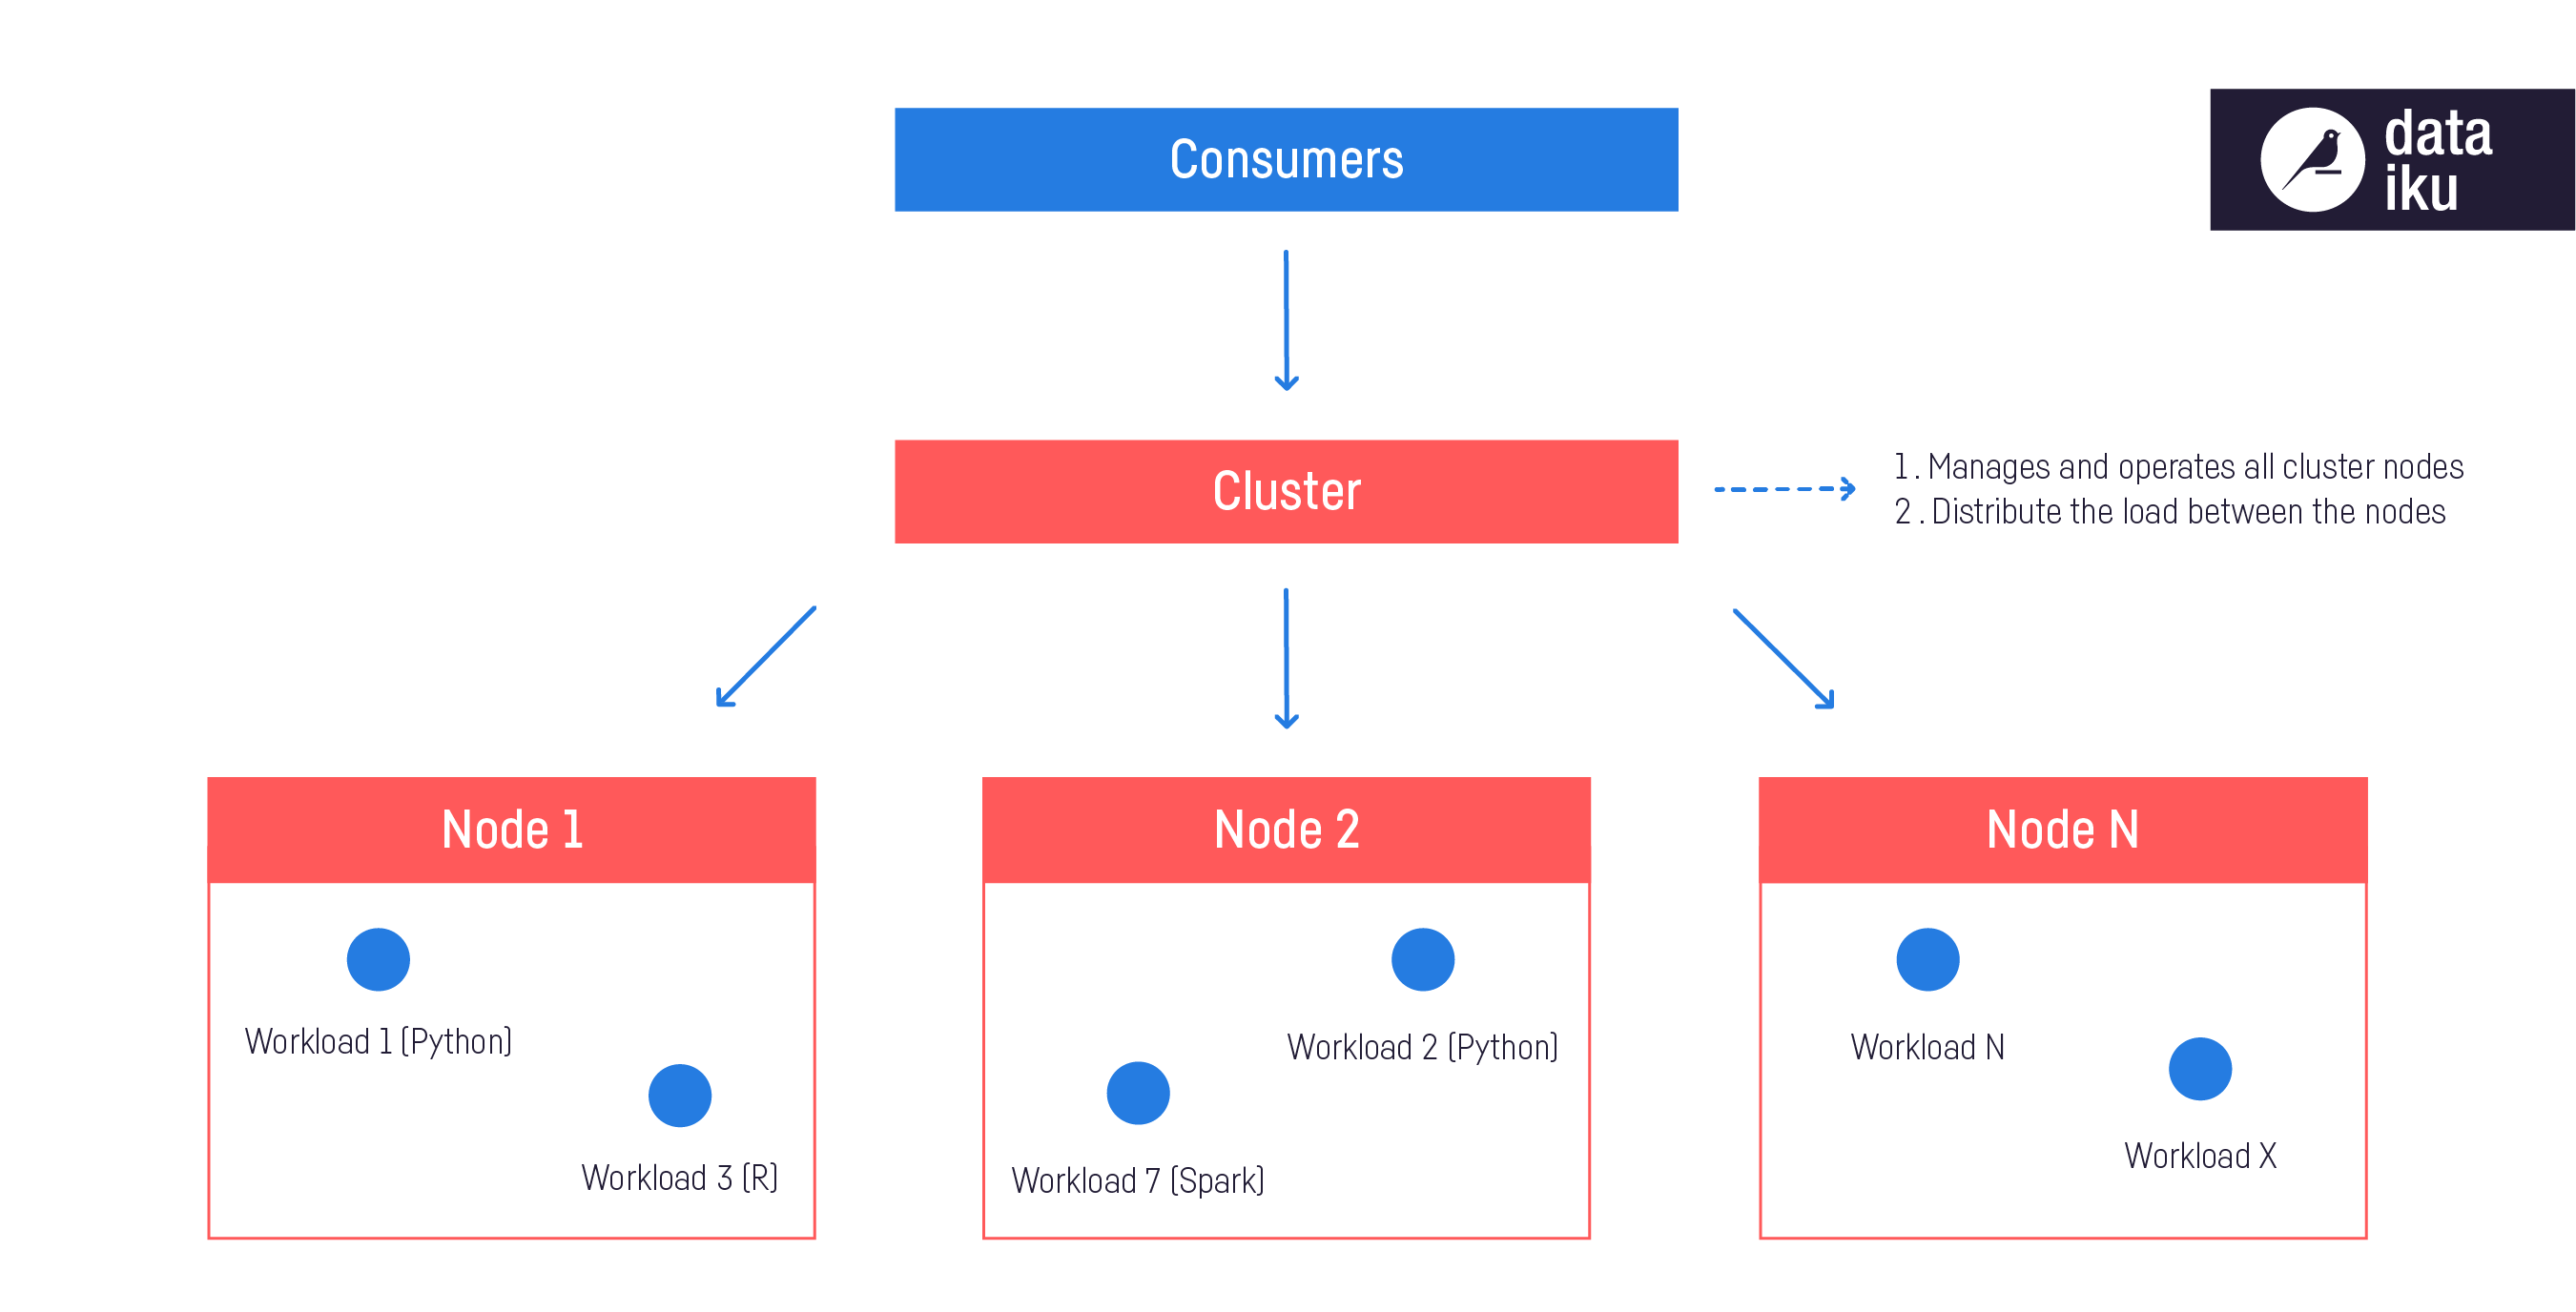 cluster-with-workloads